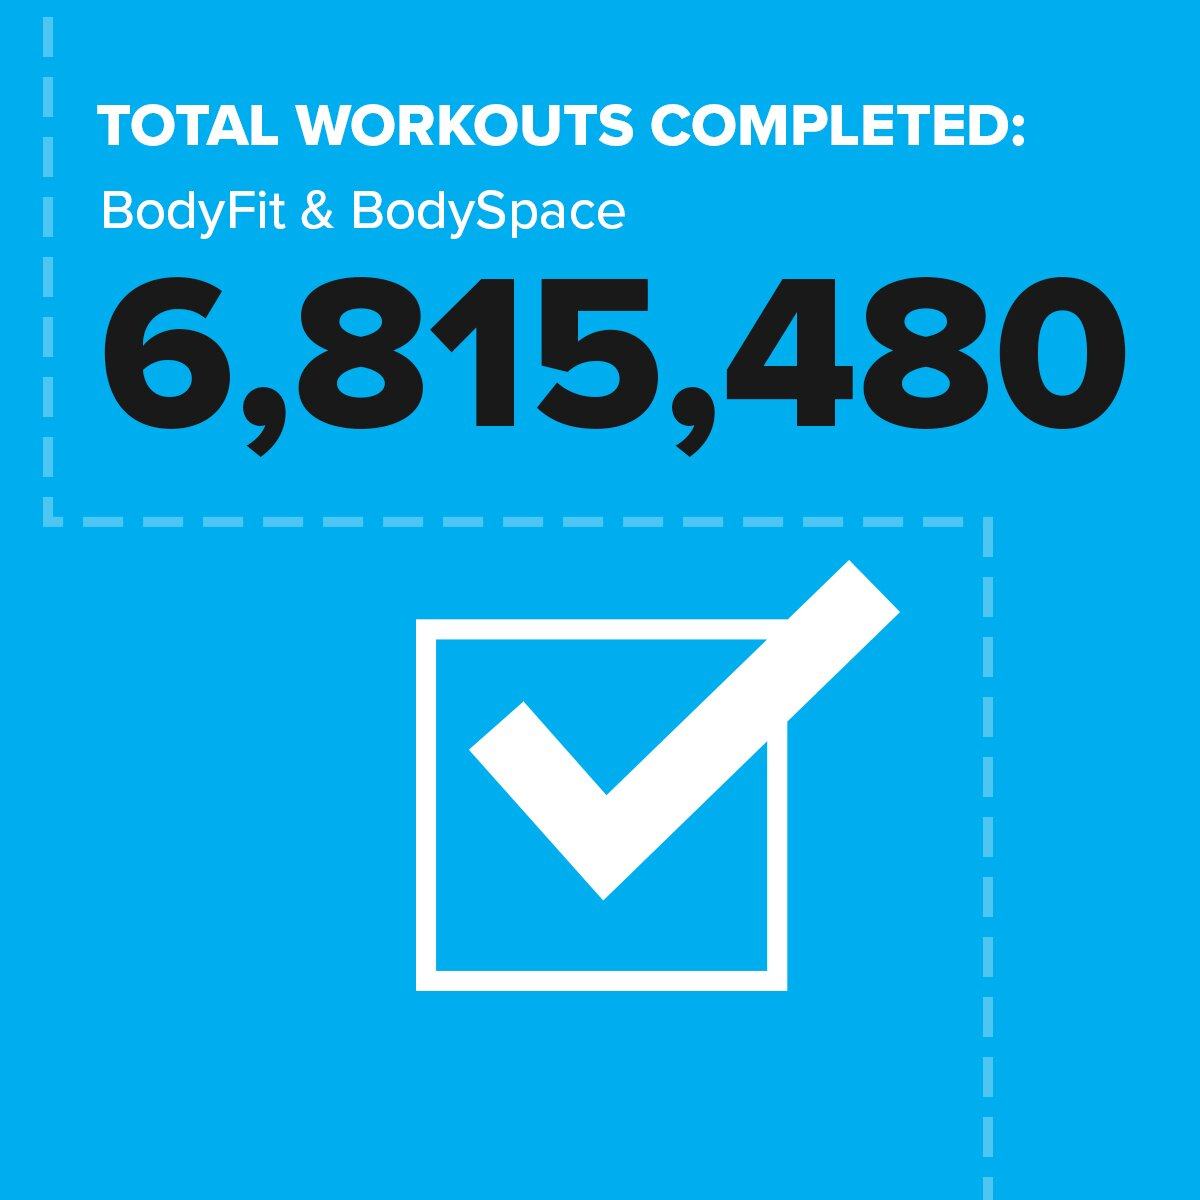 15 total workouts completed Stronger Together: Your Year in Fitness 2020